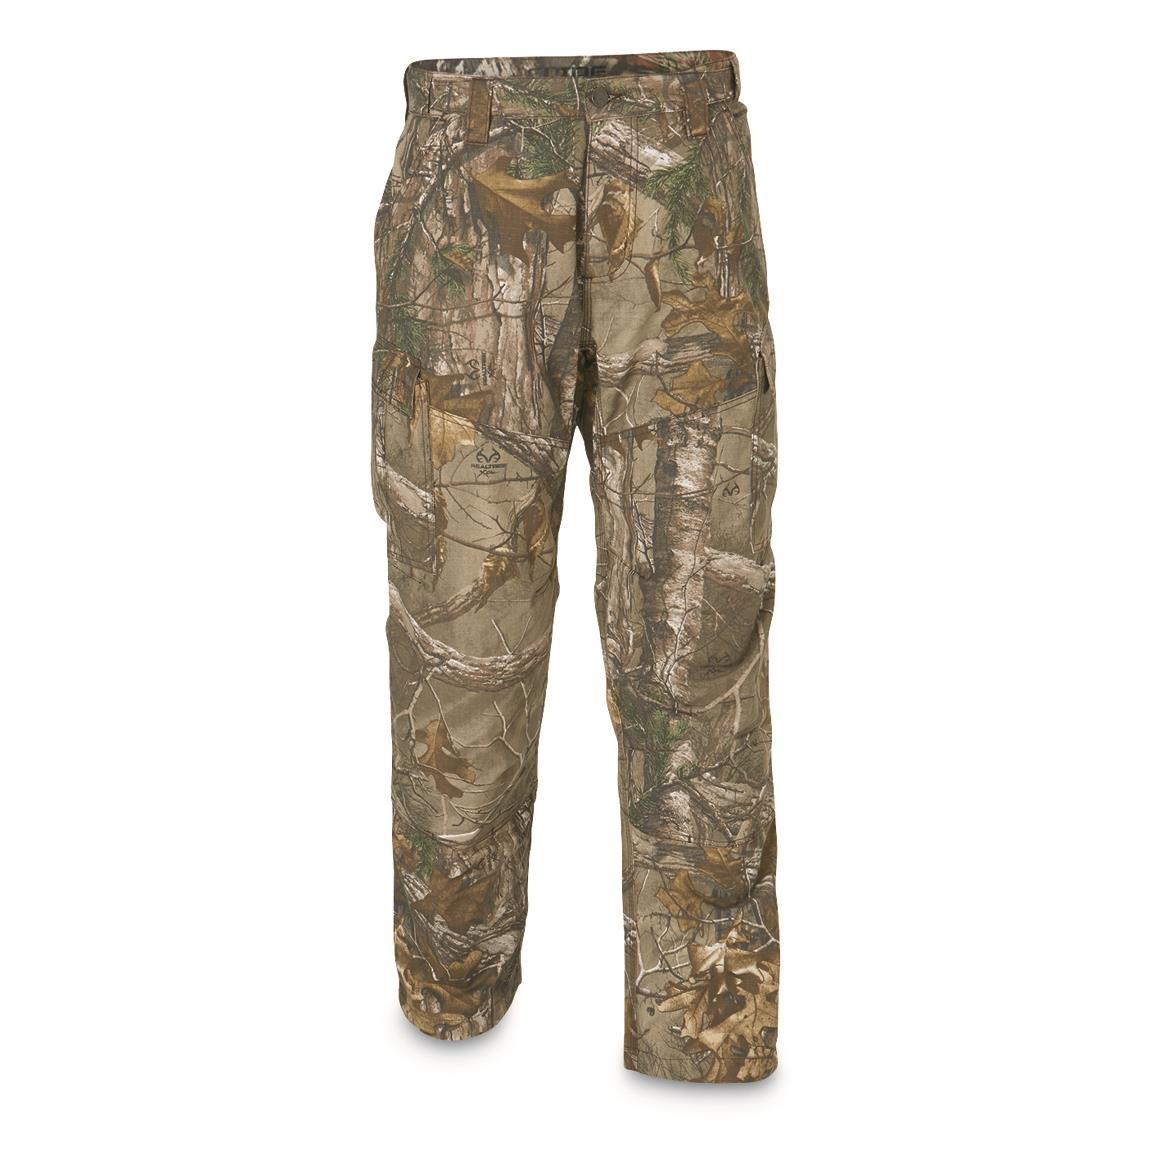 Guide Gear Men's 7-Pocket Ripstop Pants, Realtree Xtra